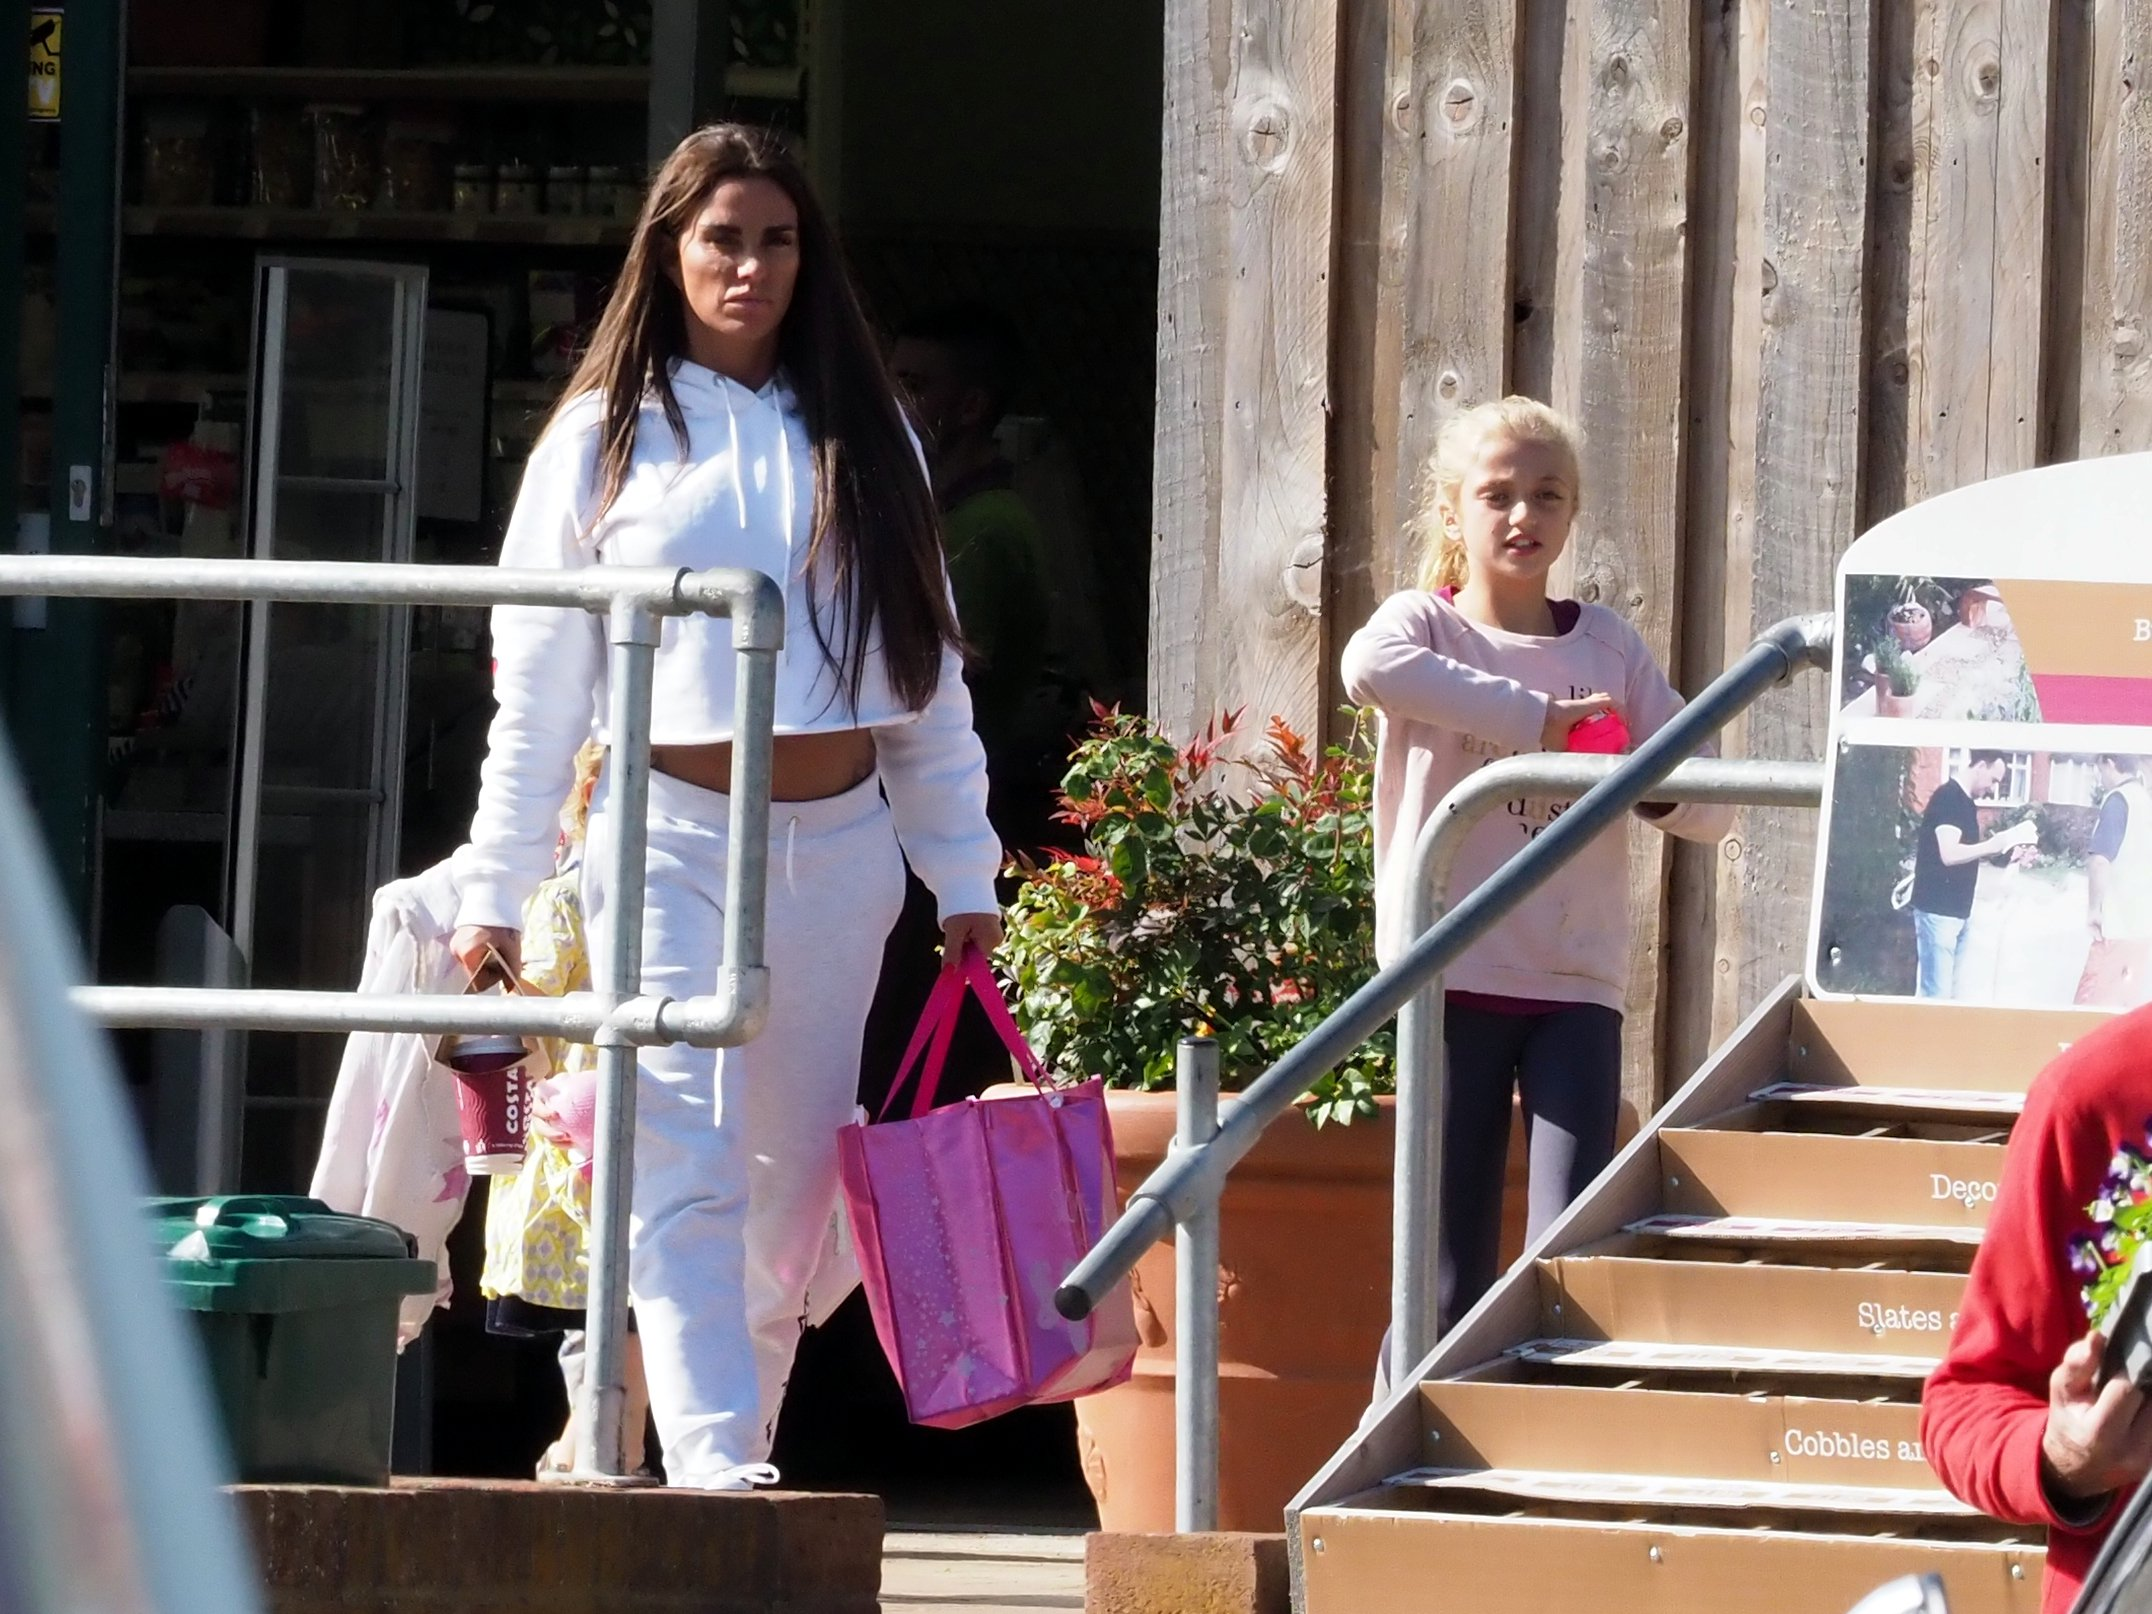 EXCLUSIVE ALL ROUNDER ***MINIMUM FEE ??250 PER PICTURE APPLIES*** Katie Price is seen for the first time since submitting to a rehab clinic out shopping with three of her children in West Sussex. Despite her ongoing reported financial woes Katie drove off in a brand new Range Rover Sport which cost from ??63000. The Reality TV star looked healthy and happy as she was seen grabbing a coffee with children Princess, Jett and Bunny. 29 September 2018. Please byline: Vantagenews.com UK clients should be aware children's faces may need pixelating.